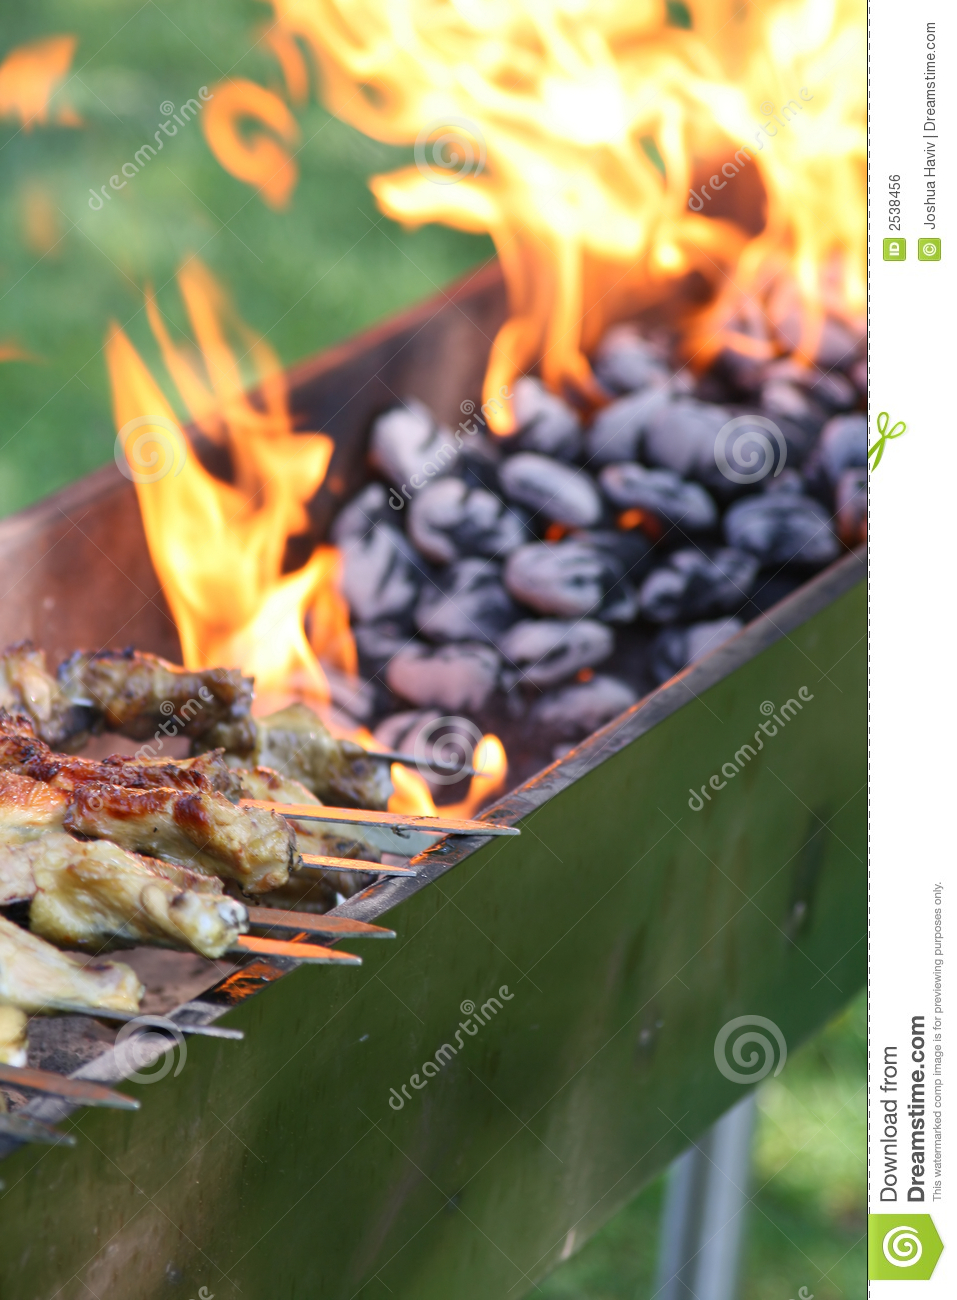 Outdoor Barbecue Grill Royalty Free Stock Image - Image: 2538456